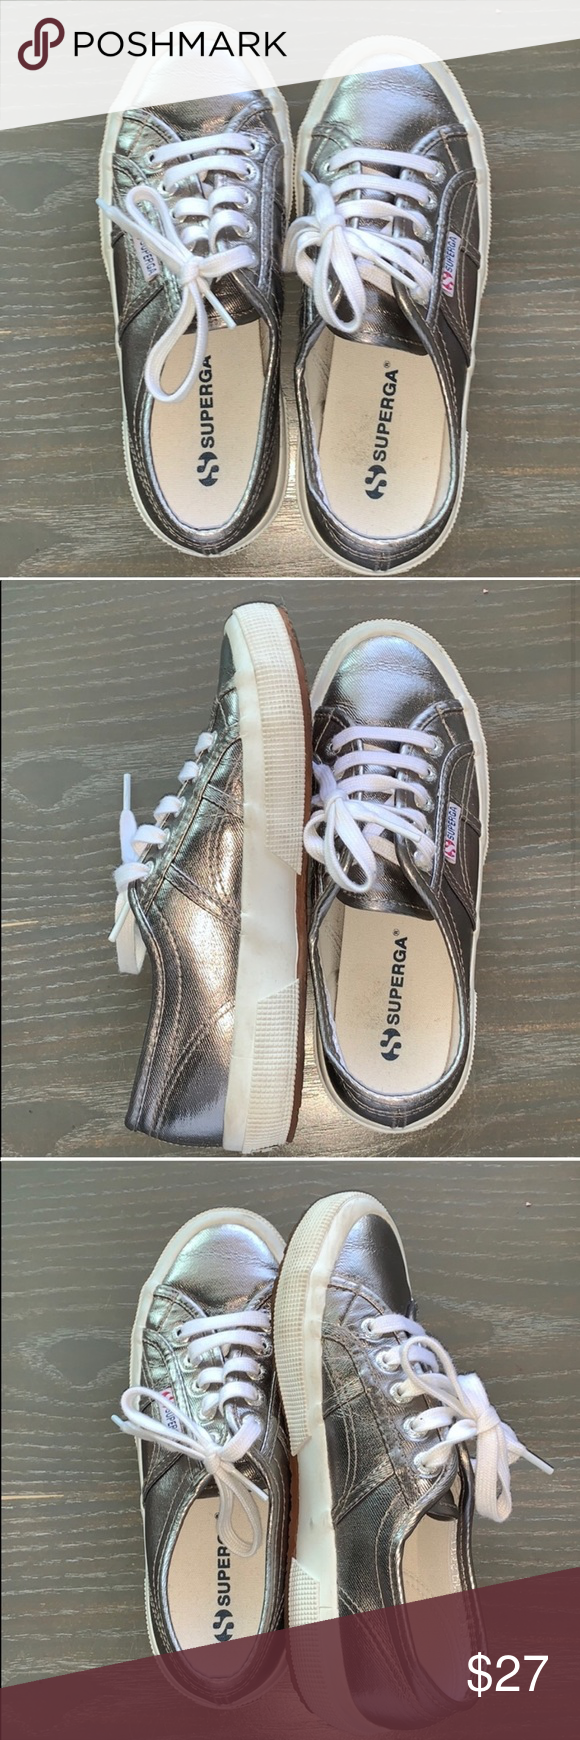 Superga - Gorgeous Pewter Sneakers in